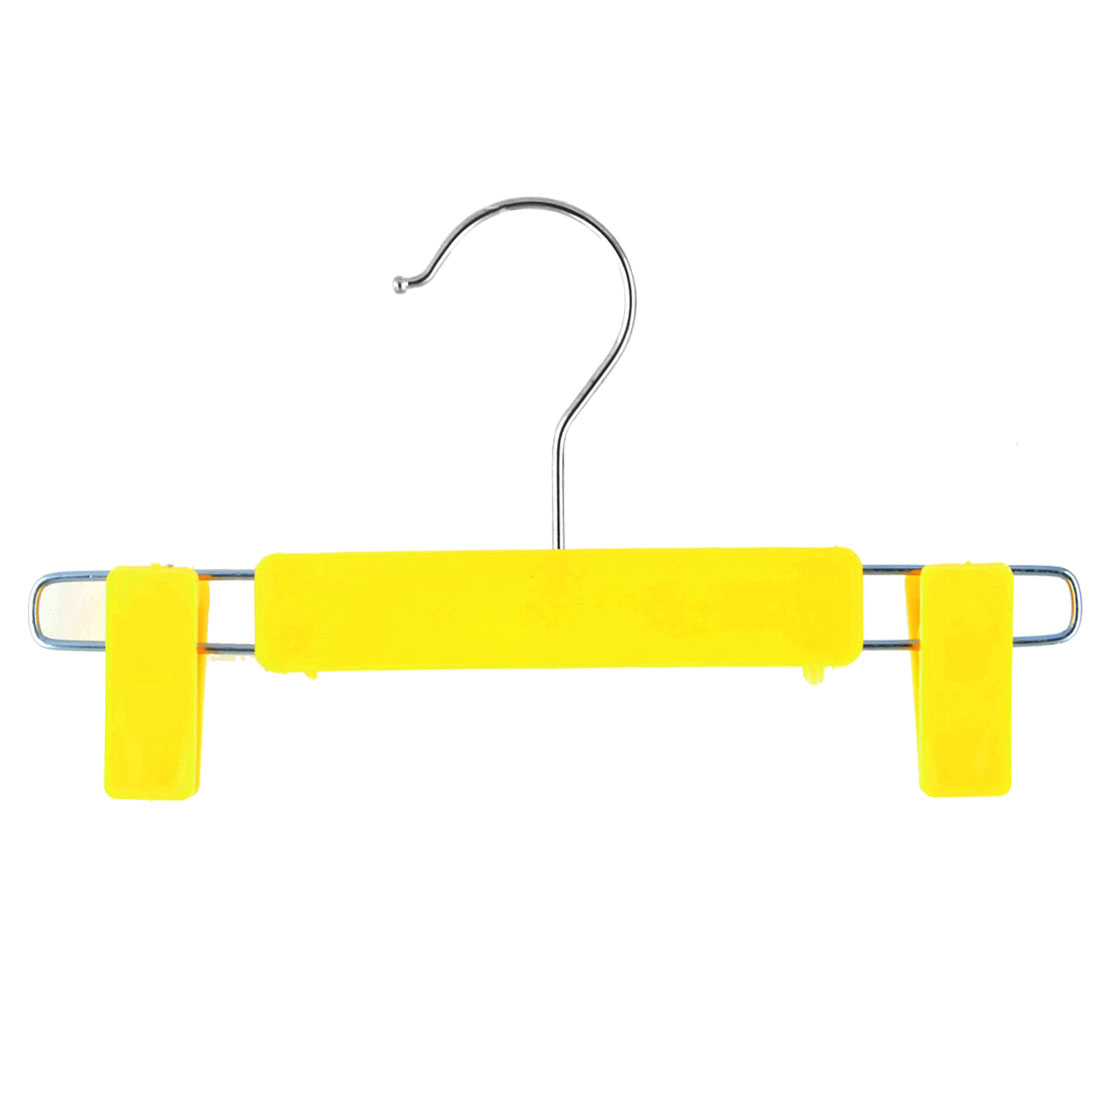 Home Wardrobe Plastic Double Clips Suits Pants Clothes Clothing Hanger Hook Yellow